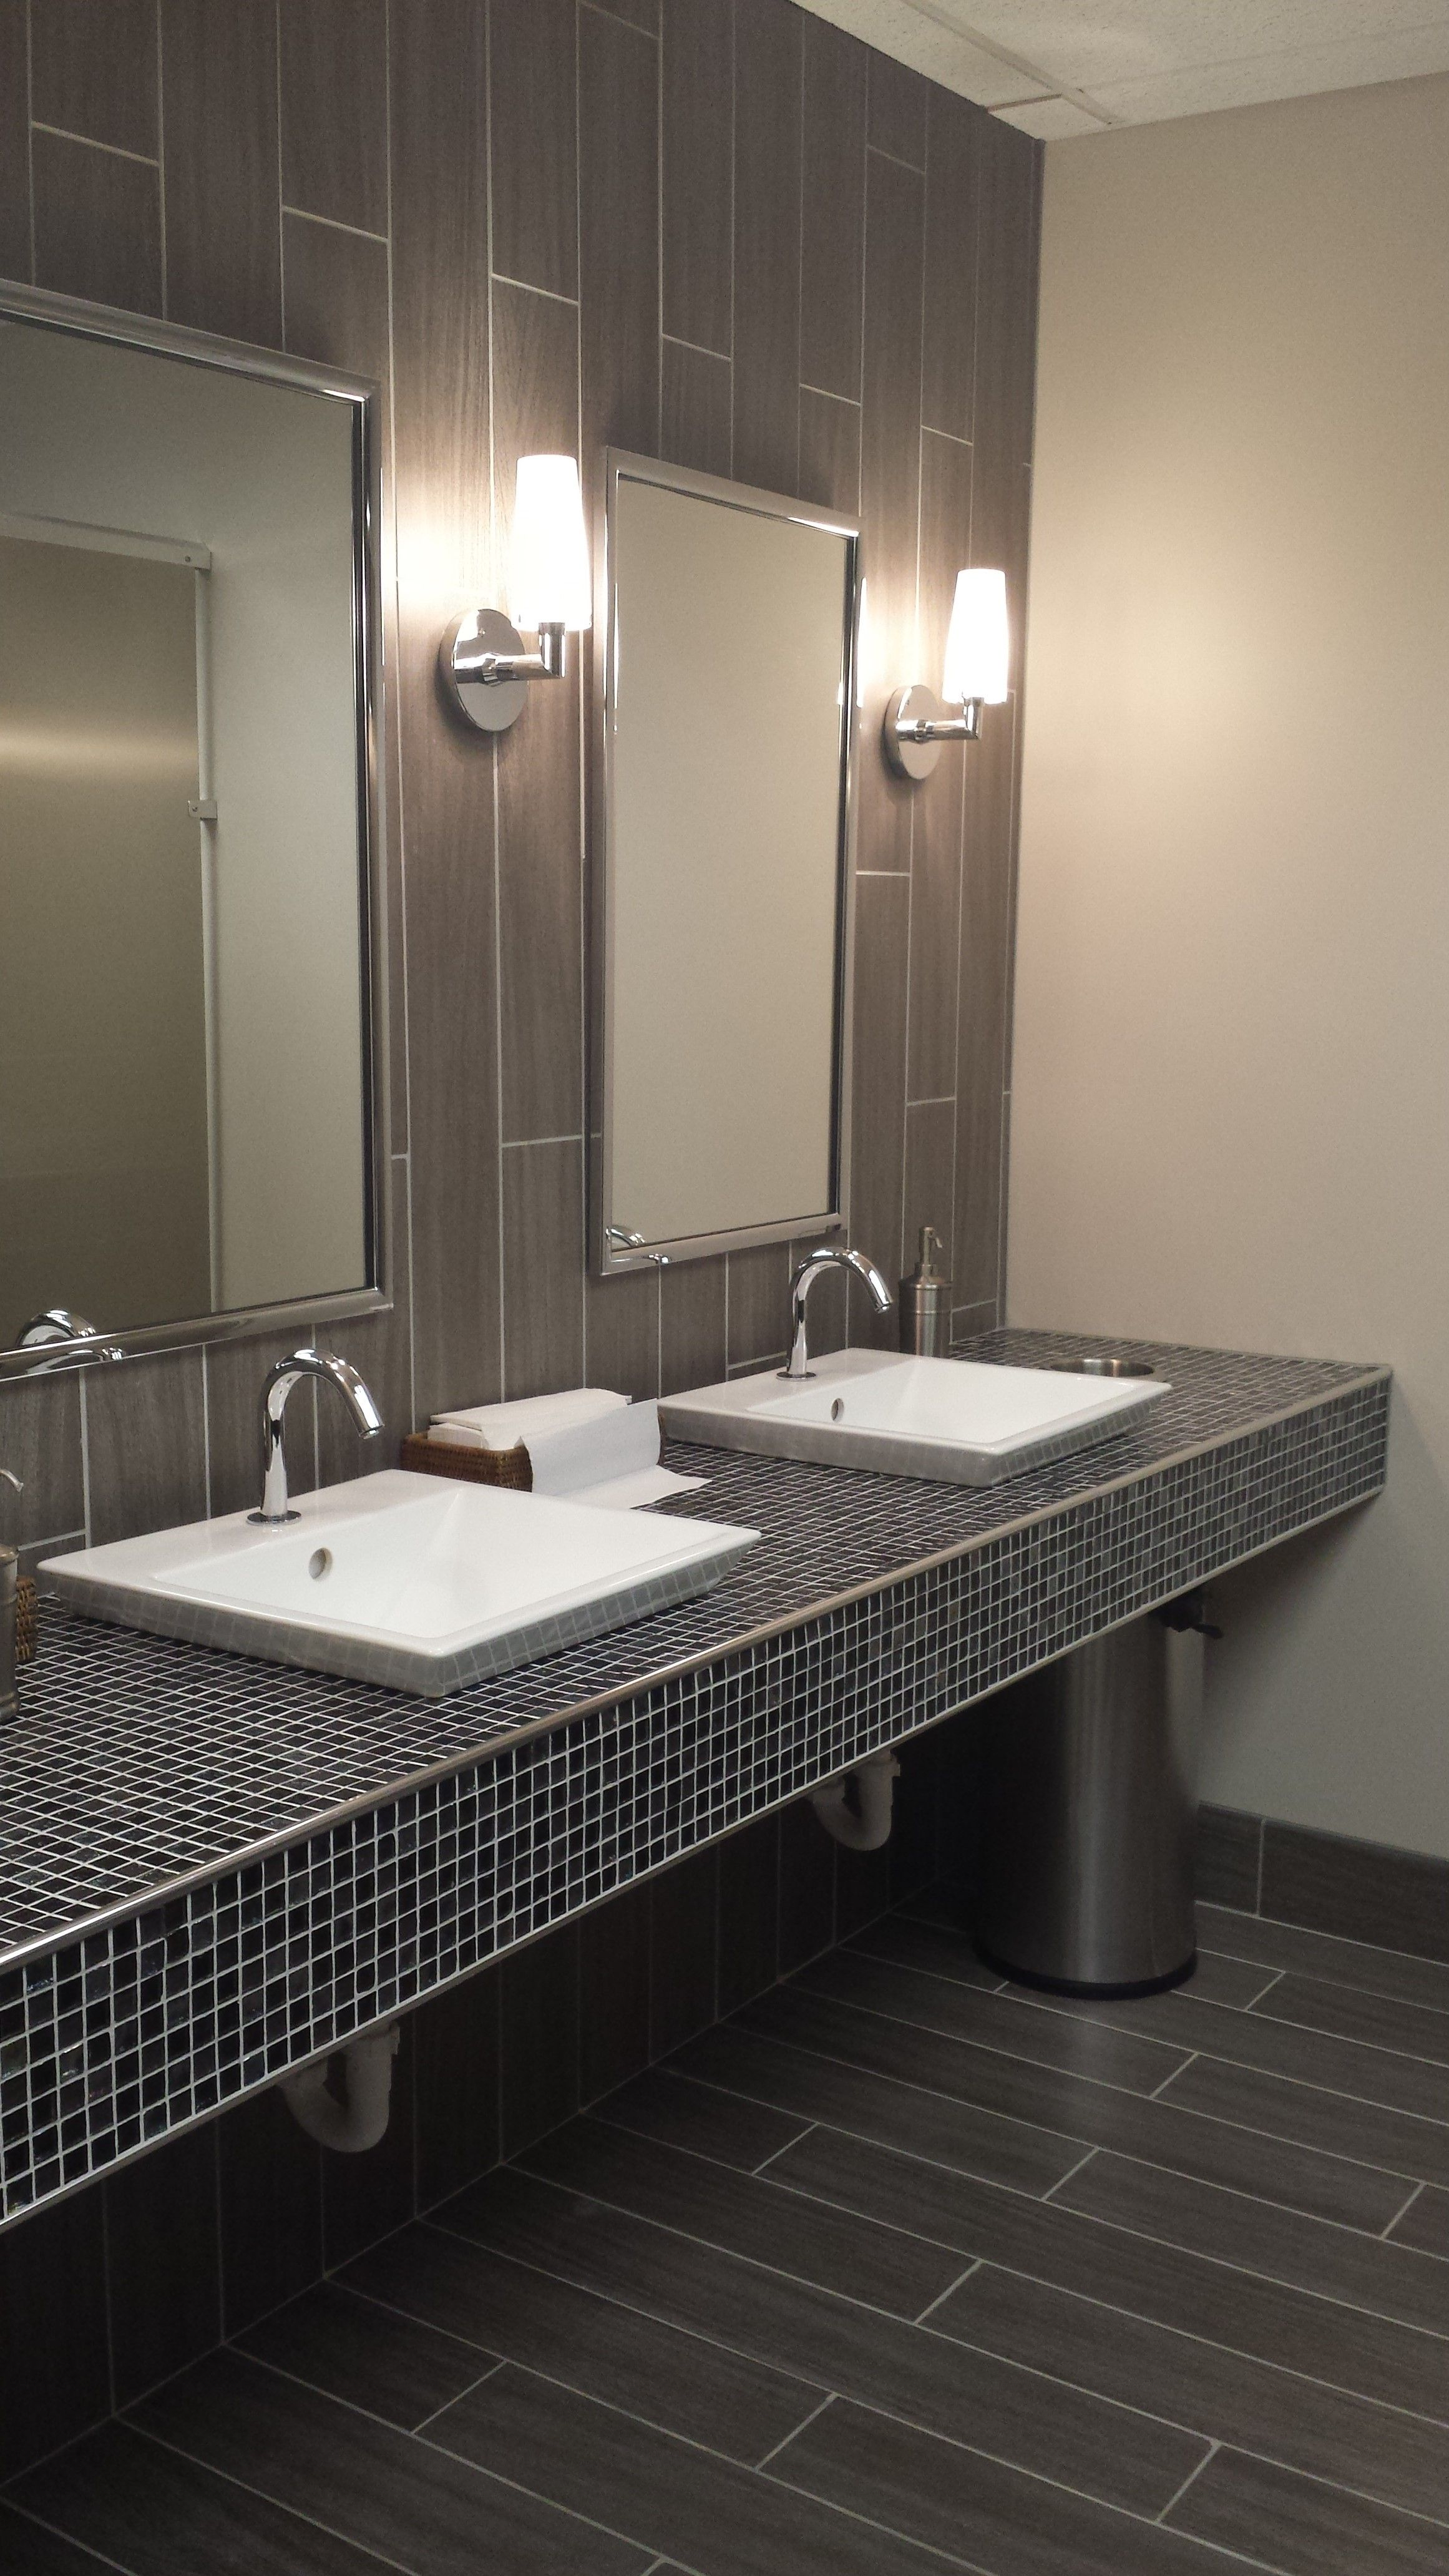 Public restroom shannon bellanca bellanca ketron tile restroom pinterest commercial - Office bathroom designs ...